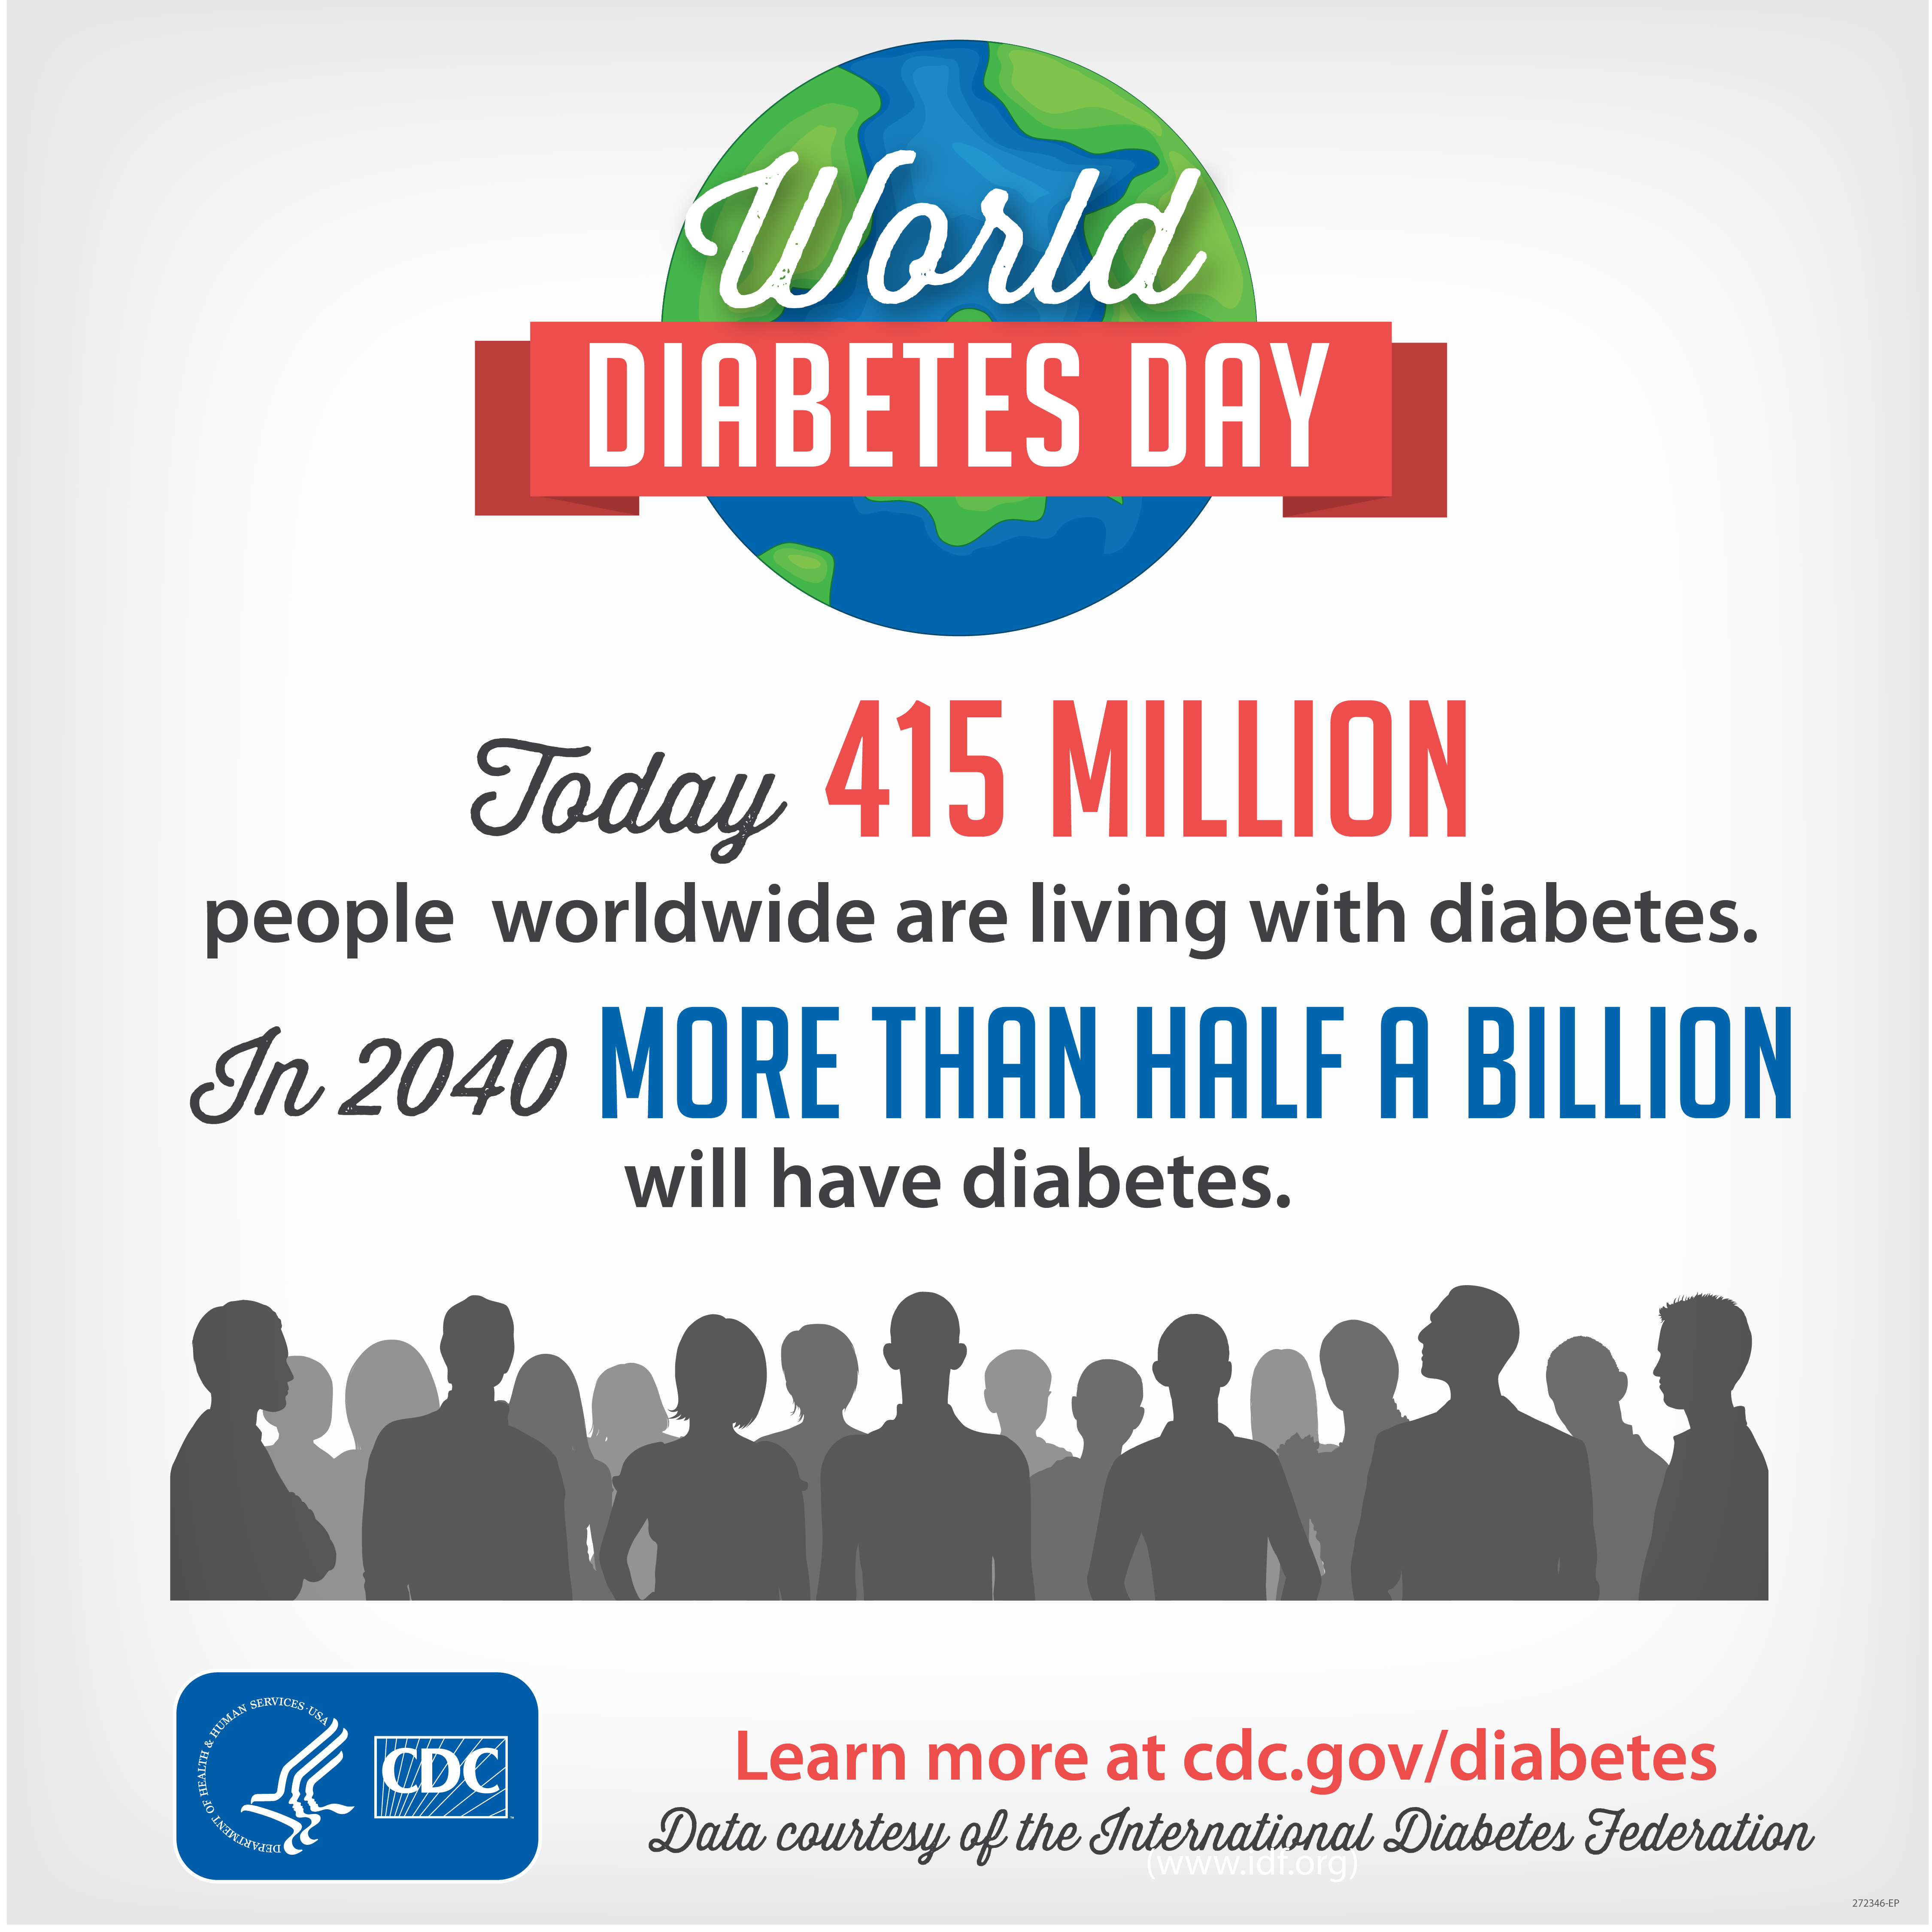 Today 415 million people worldwide are living with diabetes. In 2040 more than half a billion will have diabetes.. www.cdc.gov/globalhealth